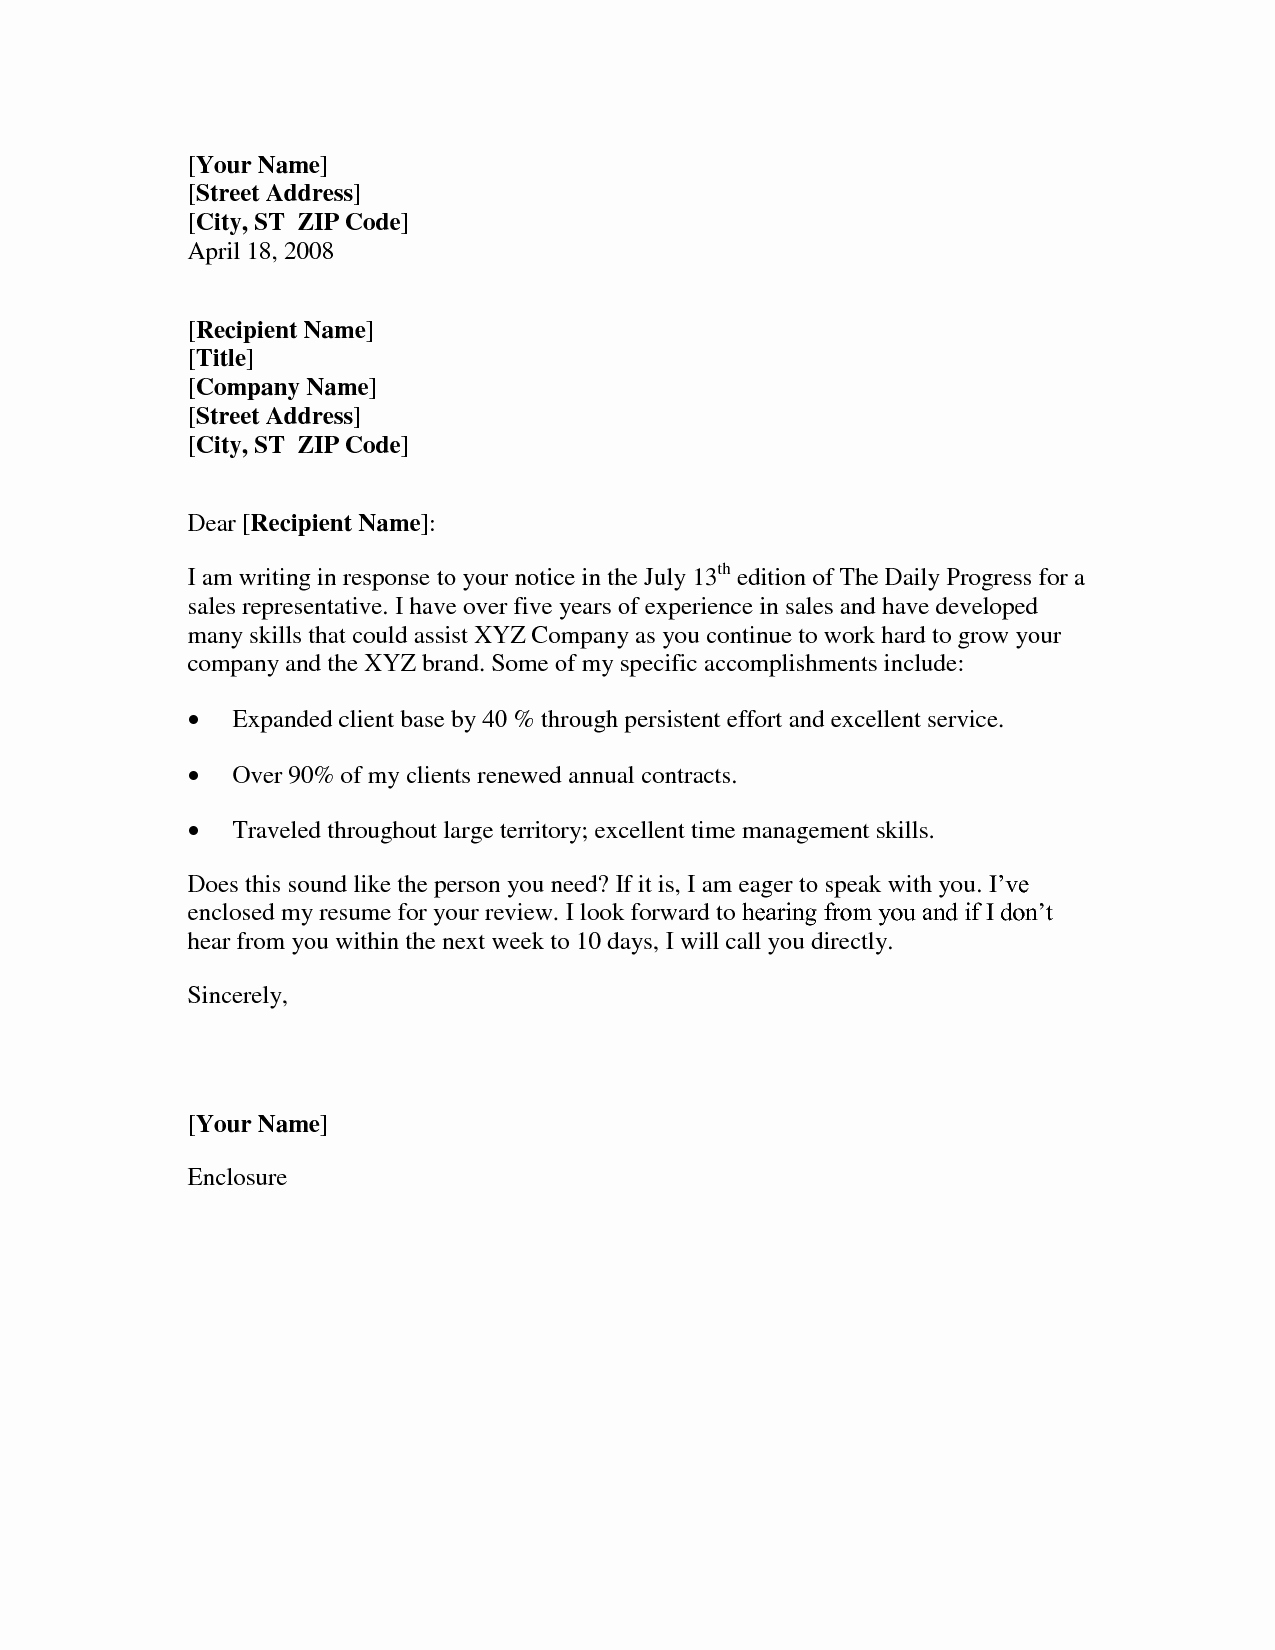 Simple Resume Cover Letter Samples Awesome 10 Best Of Basic Cover Letter for Resume Sample